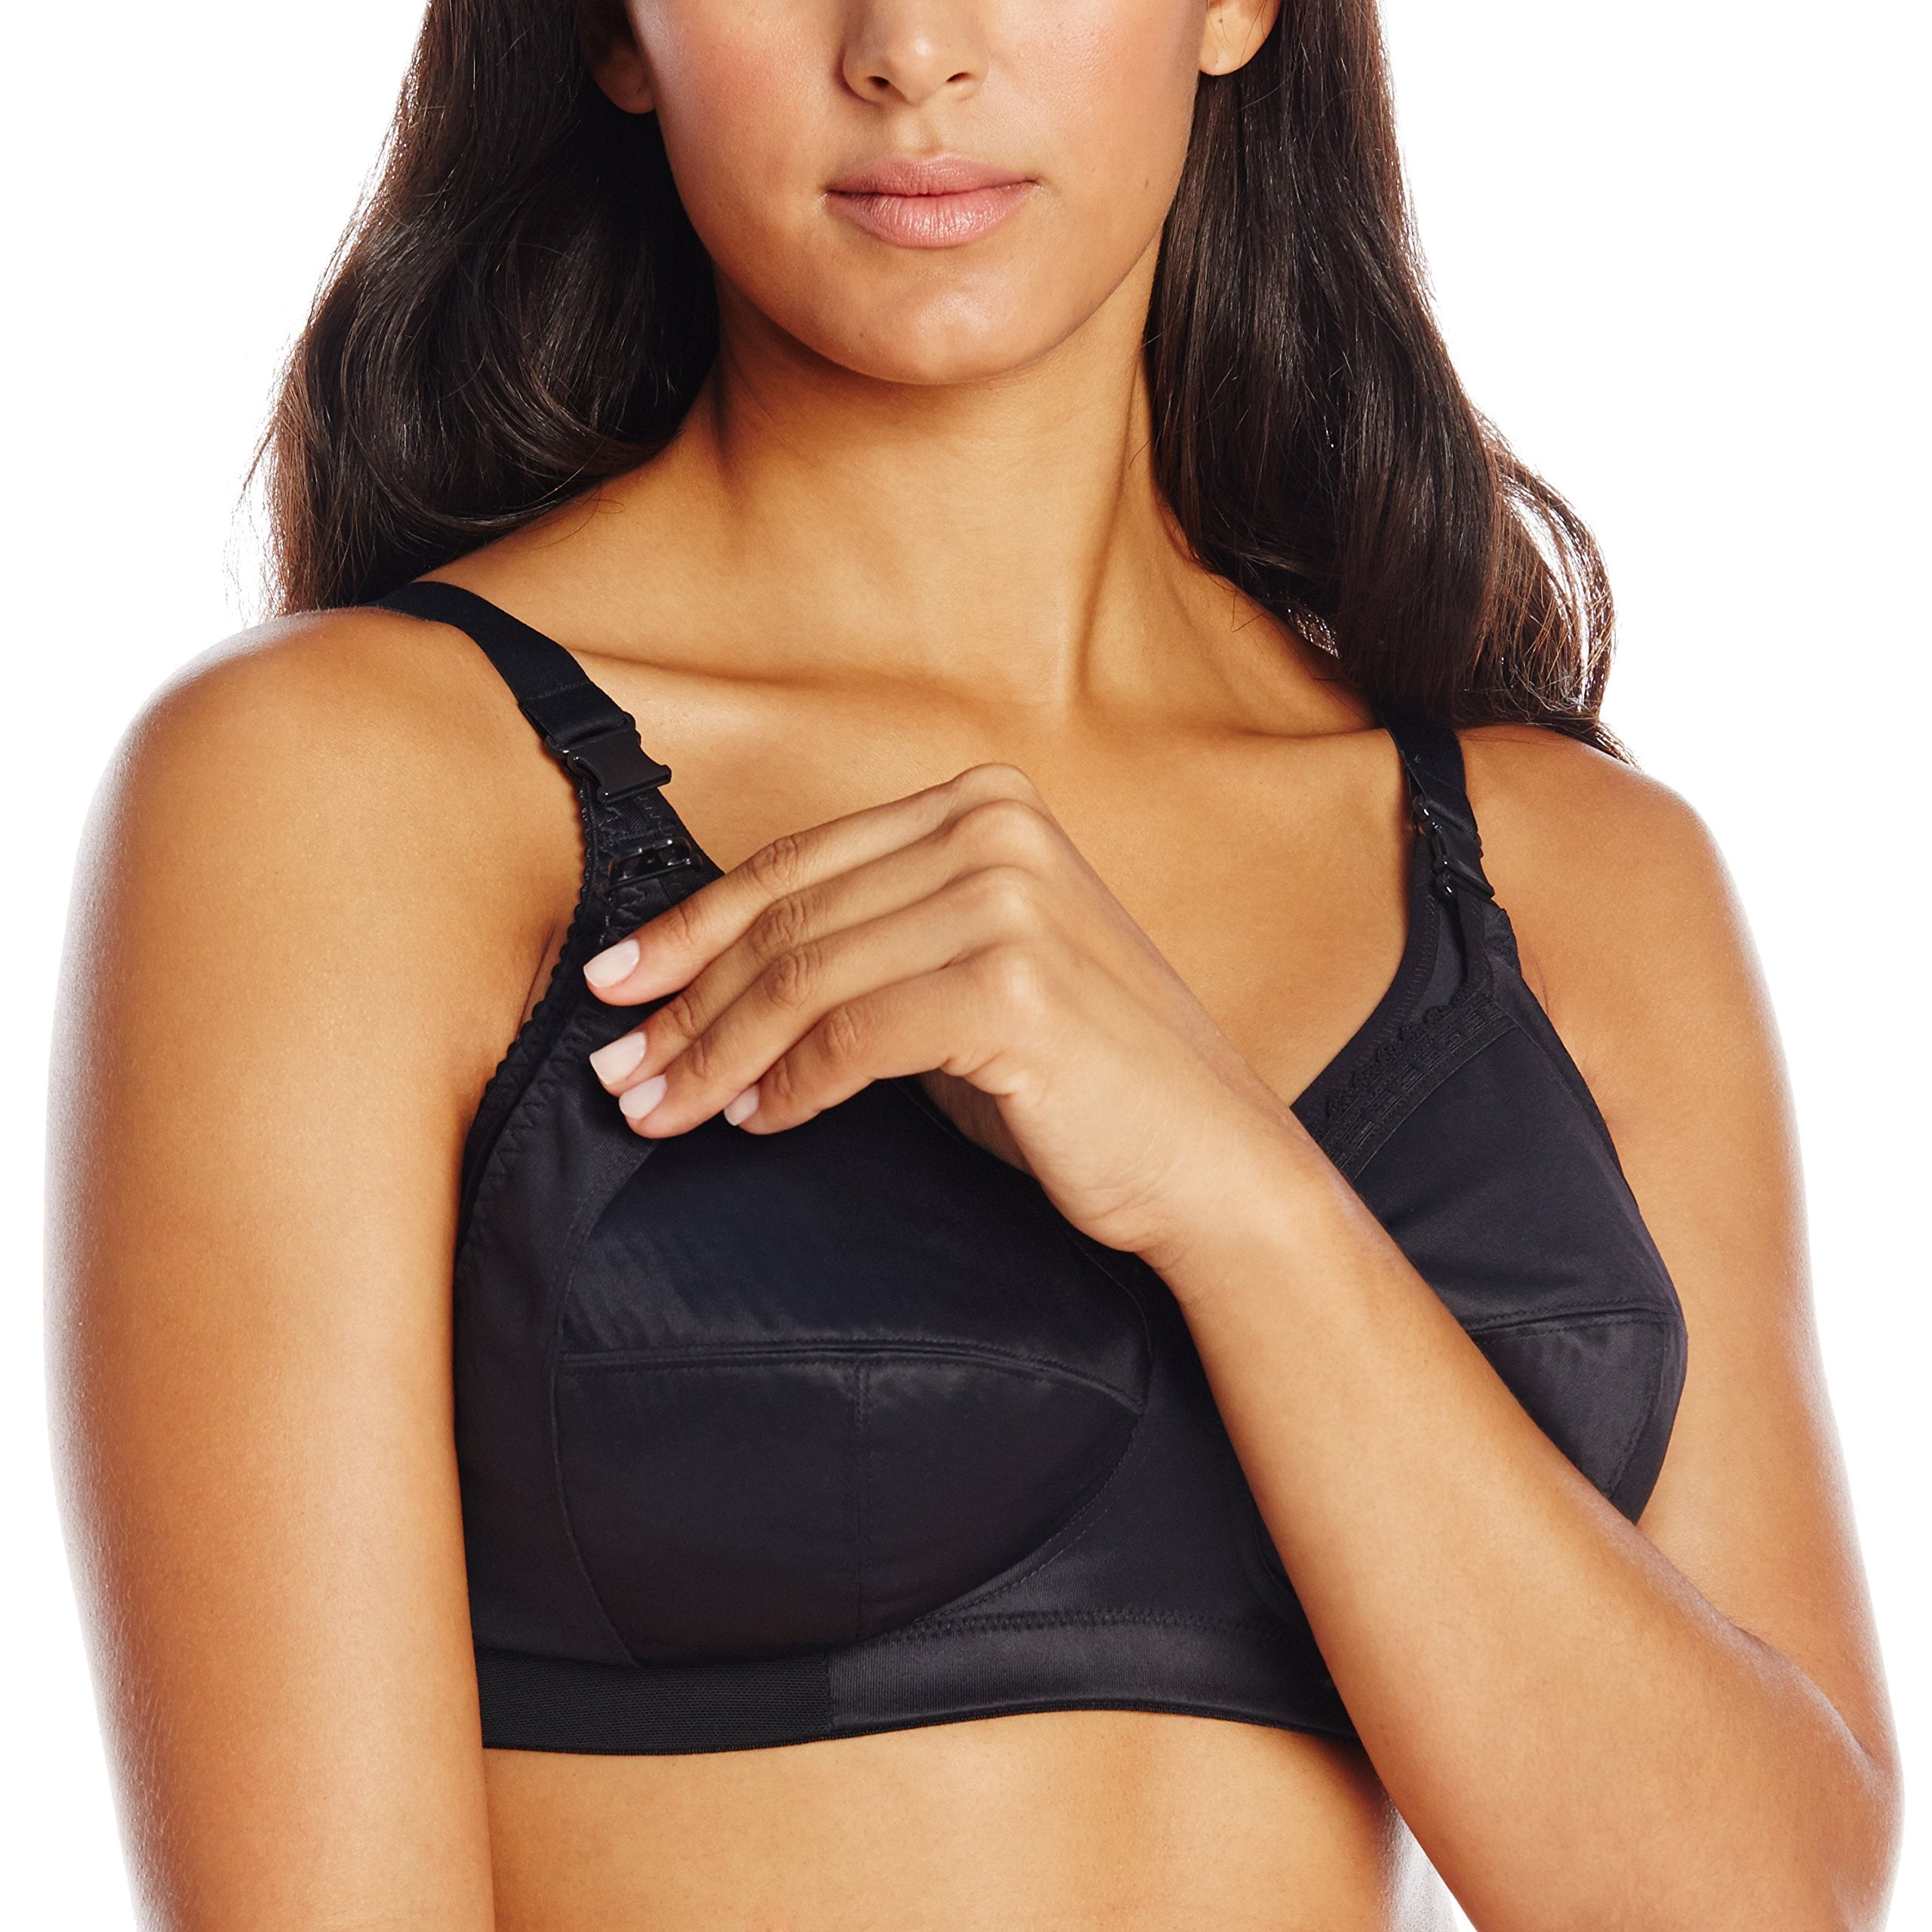 91c3ea75e87b8 Shop Elomi Black Women's Size 42I Wireless Solid Nursing Maternity Bras -  Free Shipping On Orders Over $45 - Overstock - 28438743